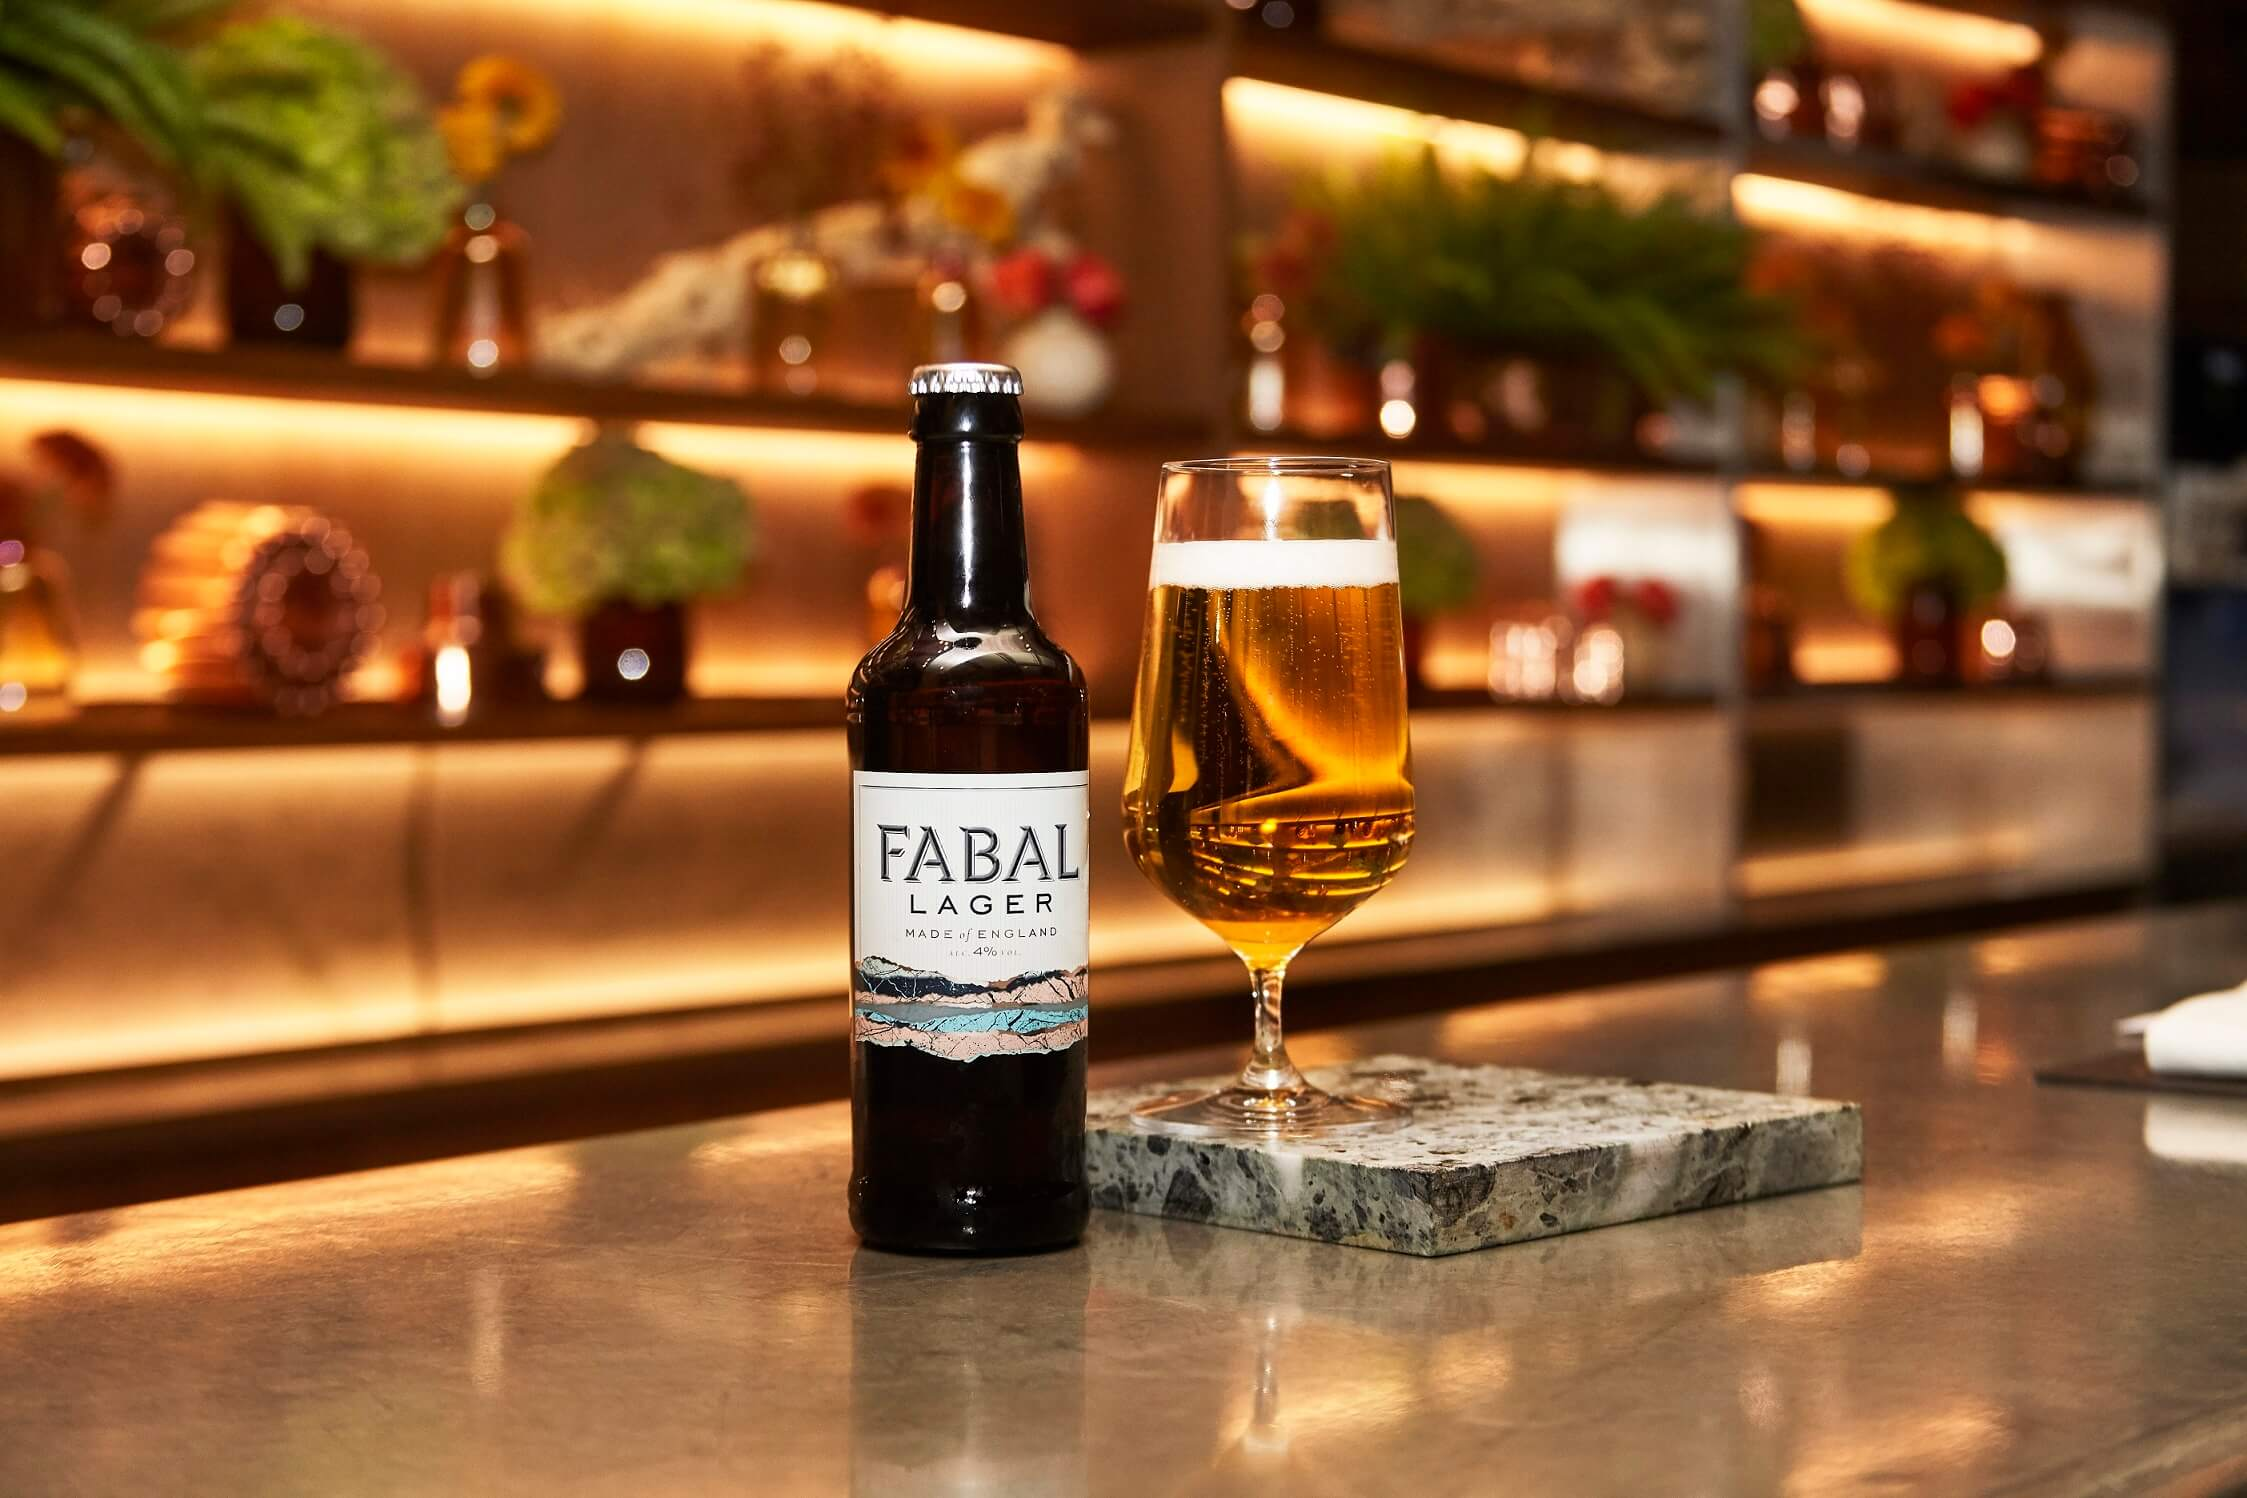 Fabal Lager at the Dorchester Hotel bar